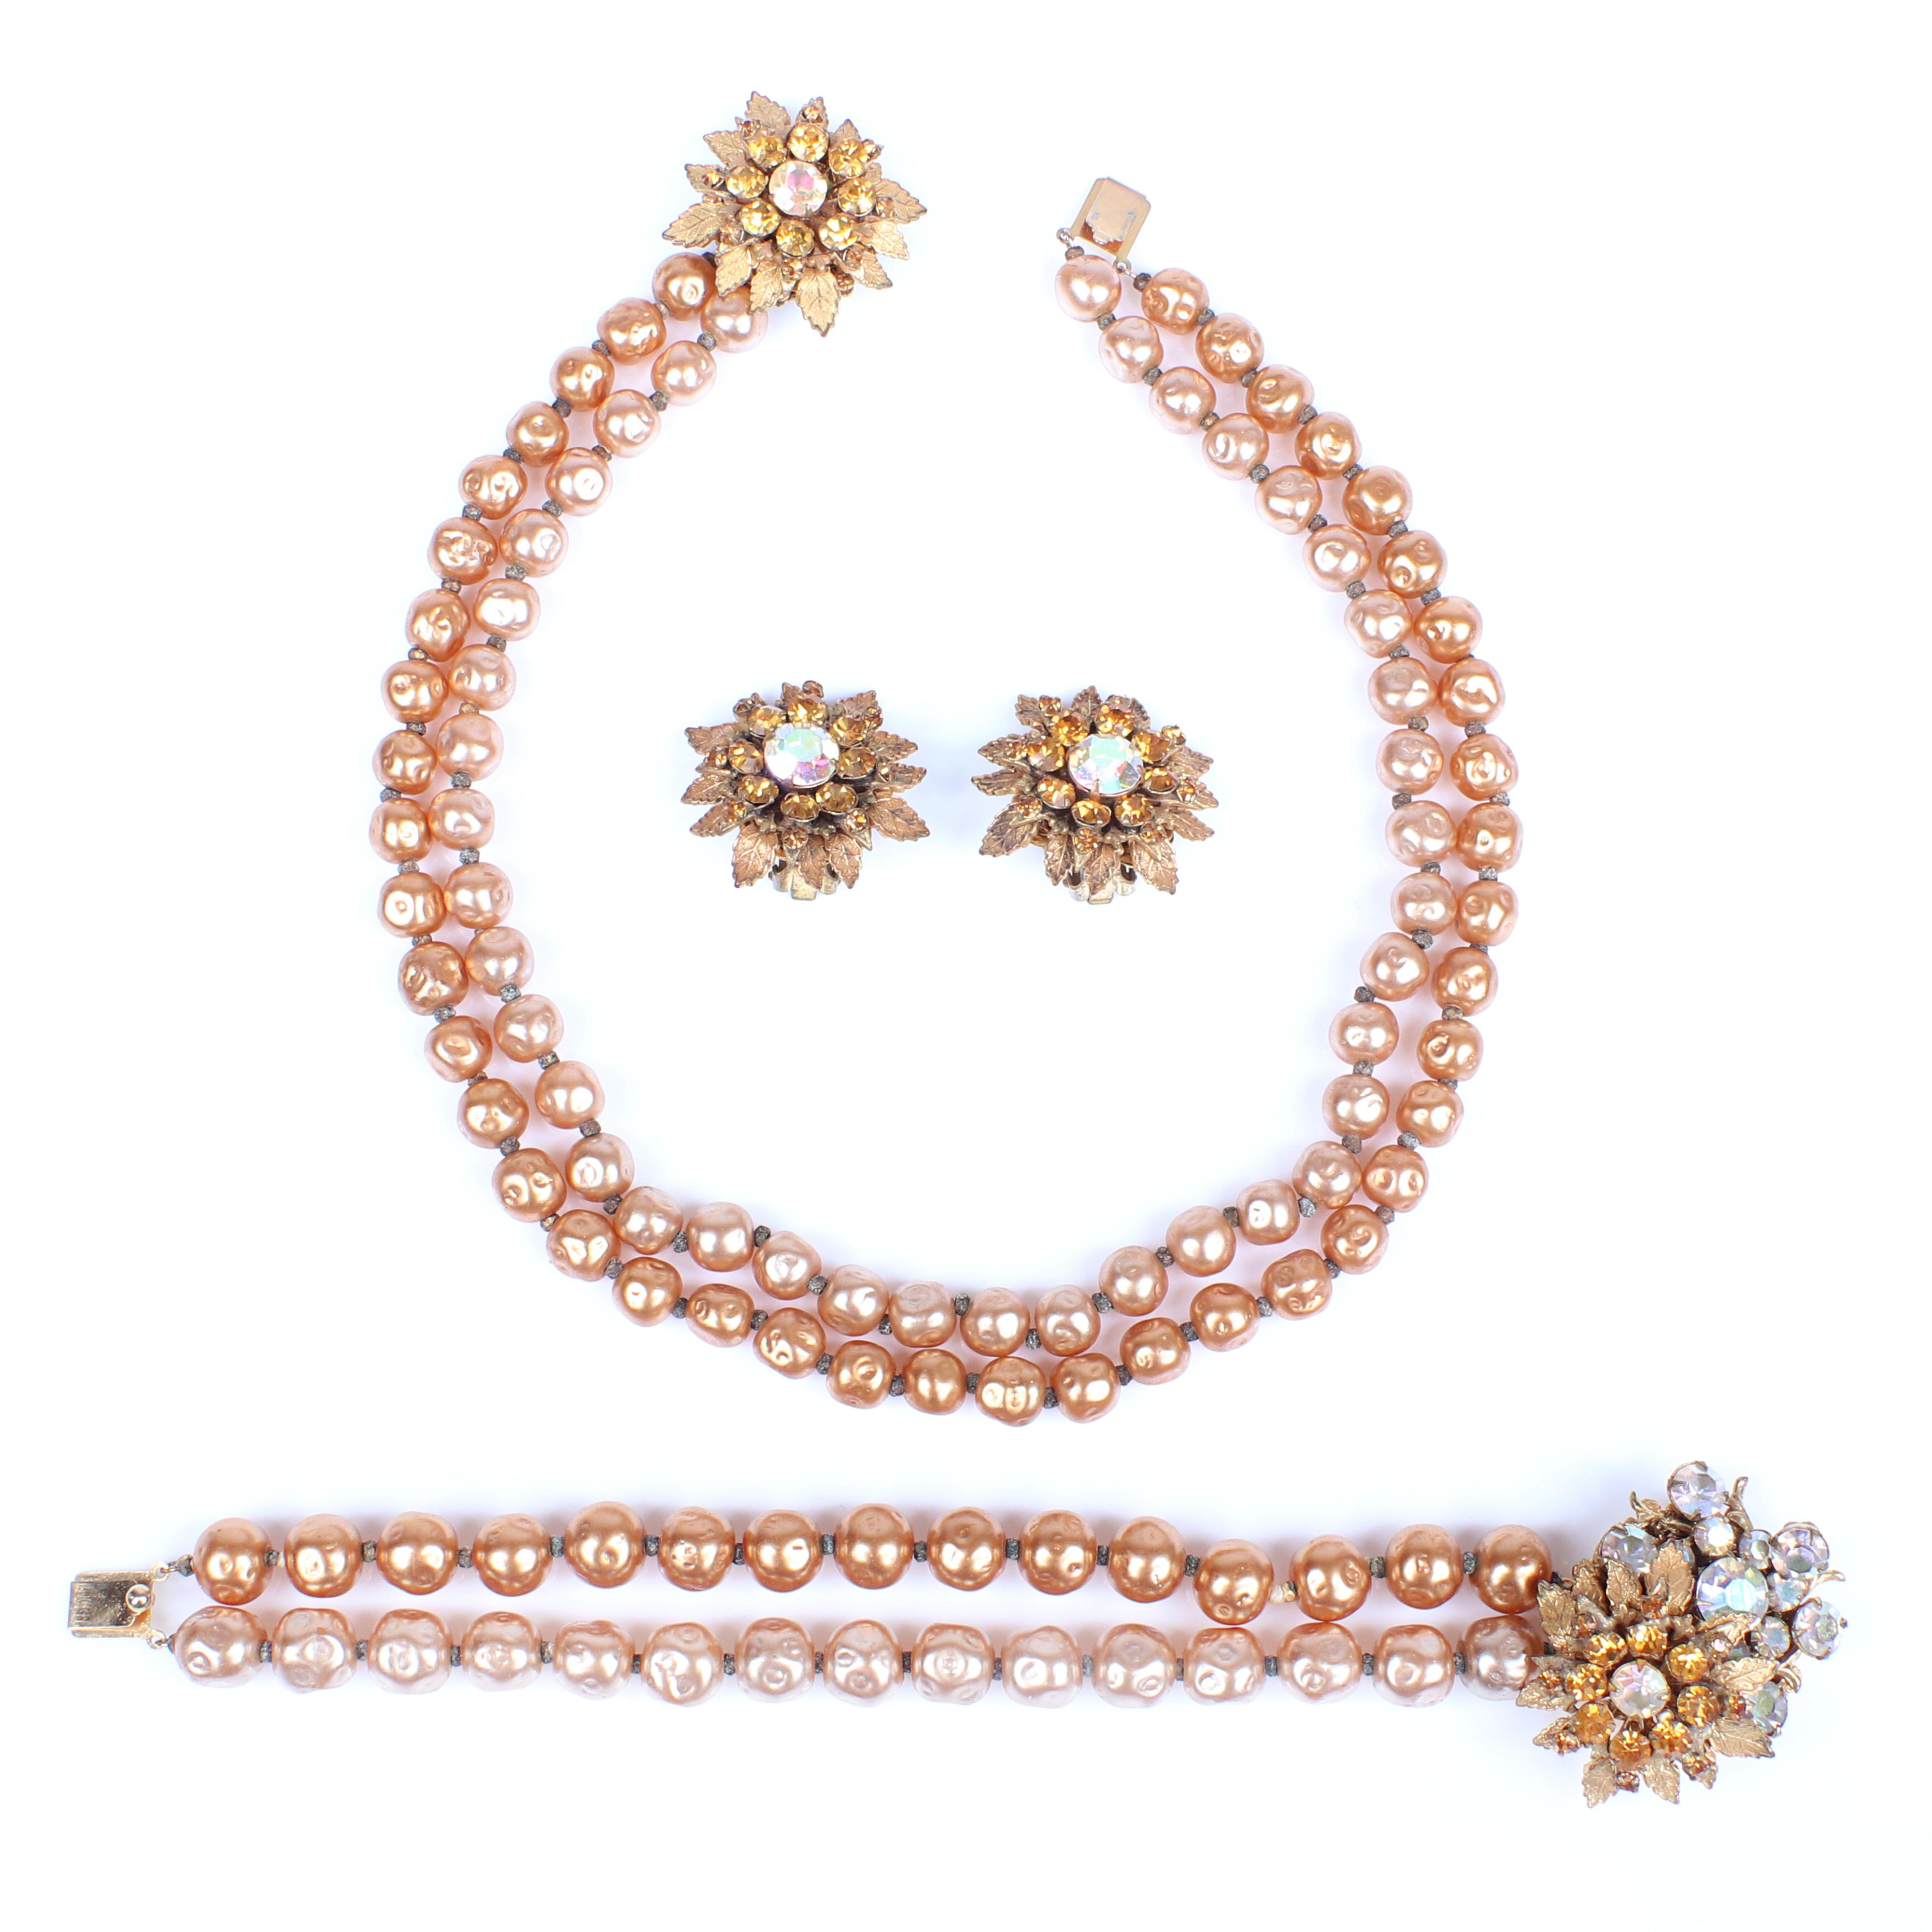 Miriam Haskell 3pc. parure with double strand golden baroque pearl necklace and bracelet, with amber rhinestone and aurora borealis crystal floral cluster earrings and clasps.